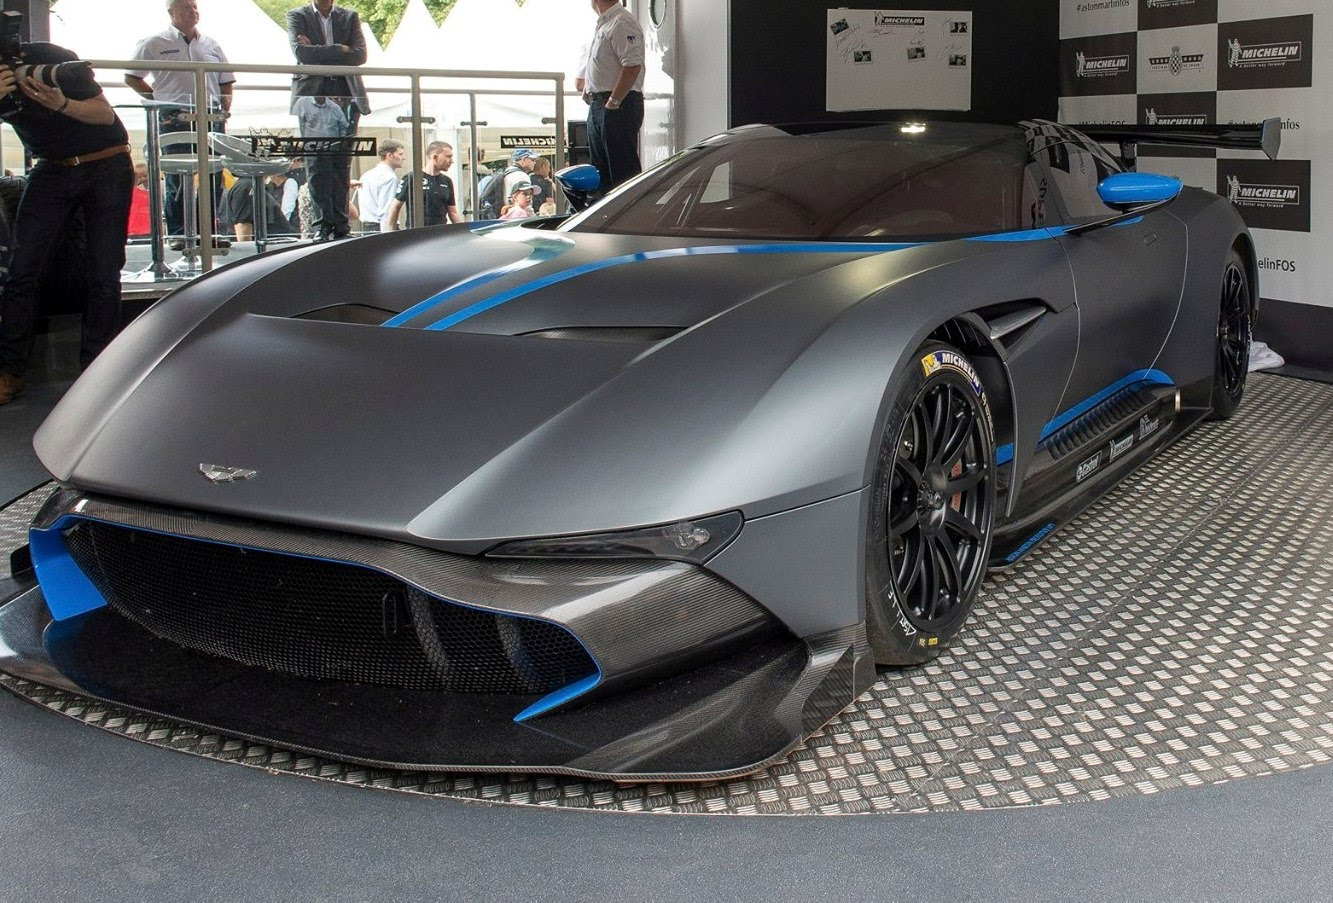 Aston Martin Vulcan PHOTO: YouTube